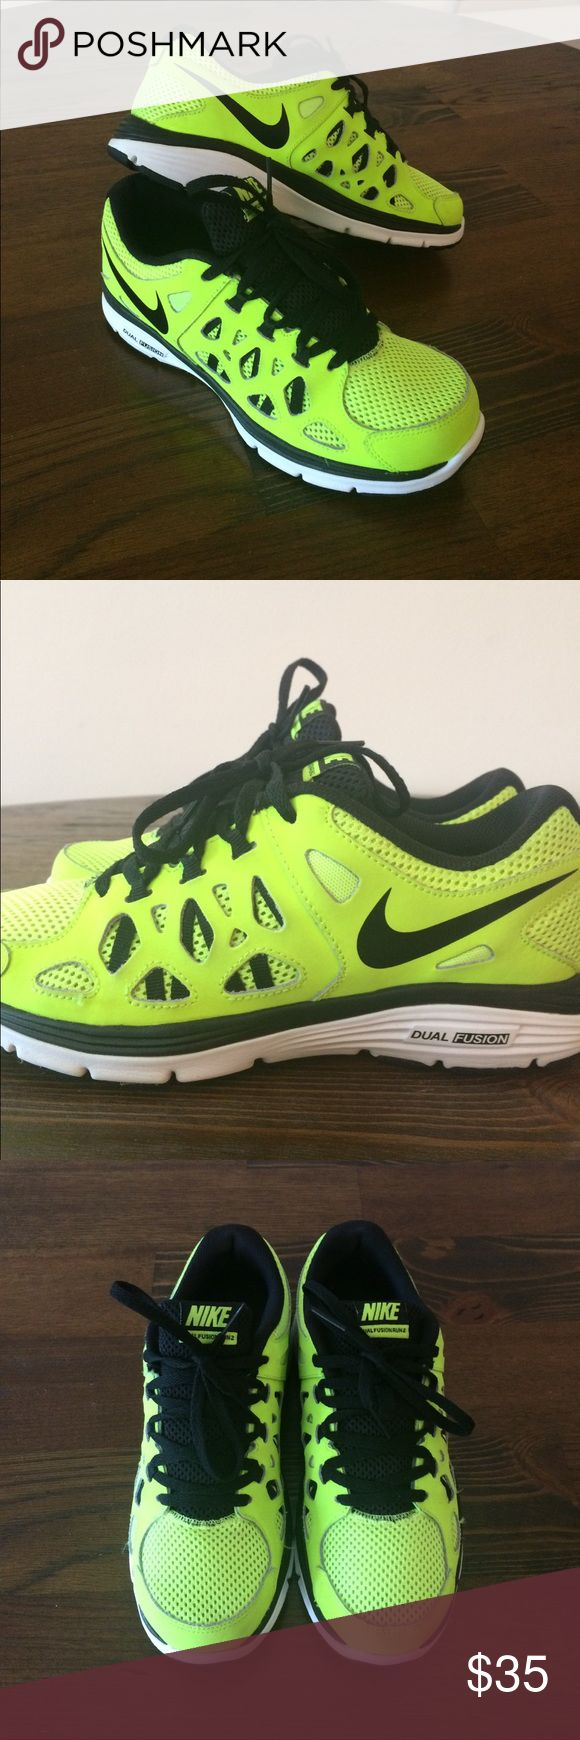 Nike Dual Fusion Run 2 Nike Dual Fusion Run 2: Size 5.5 youth but will fit Women's 7 or 7.5. These shoes are in great condition and very comfortable. Only worn a handful of times.Good Condition. Well worth the price. Serious Inquiries only.  Please read d